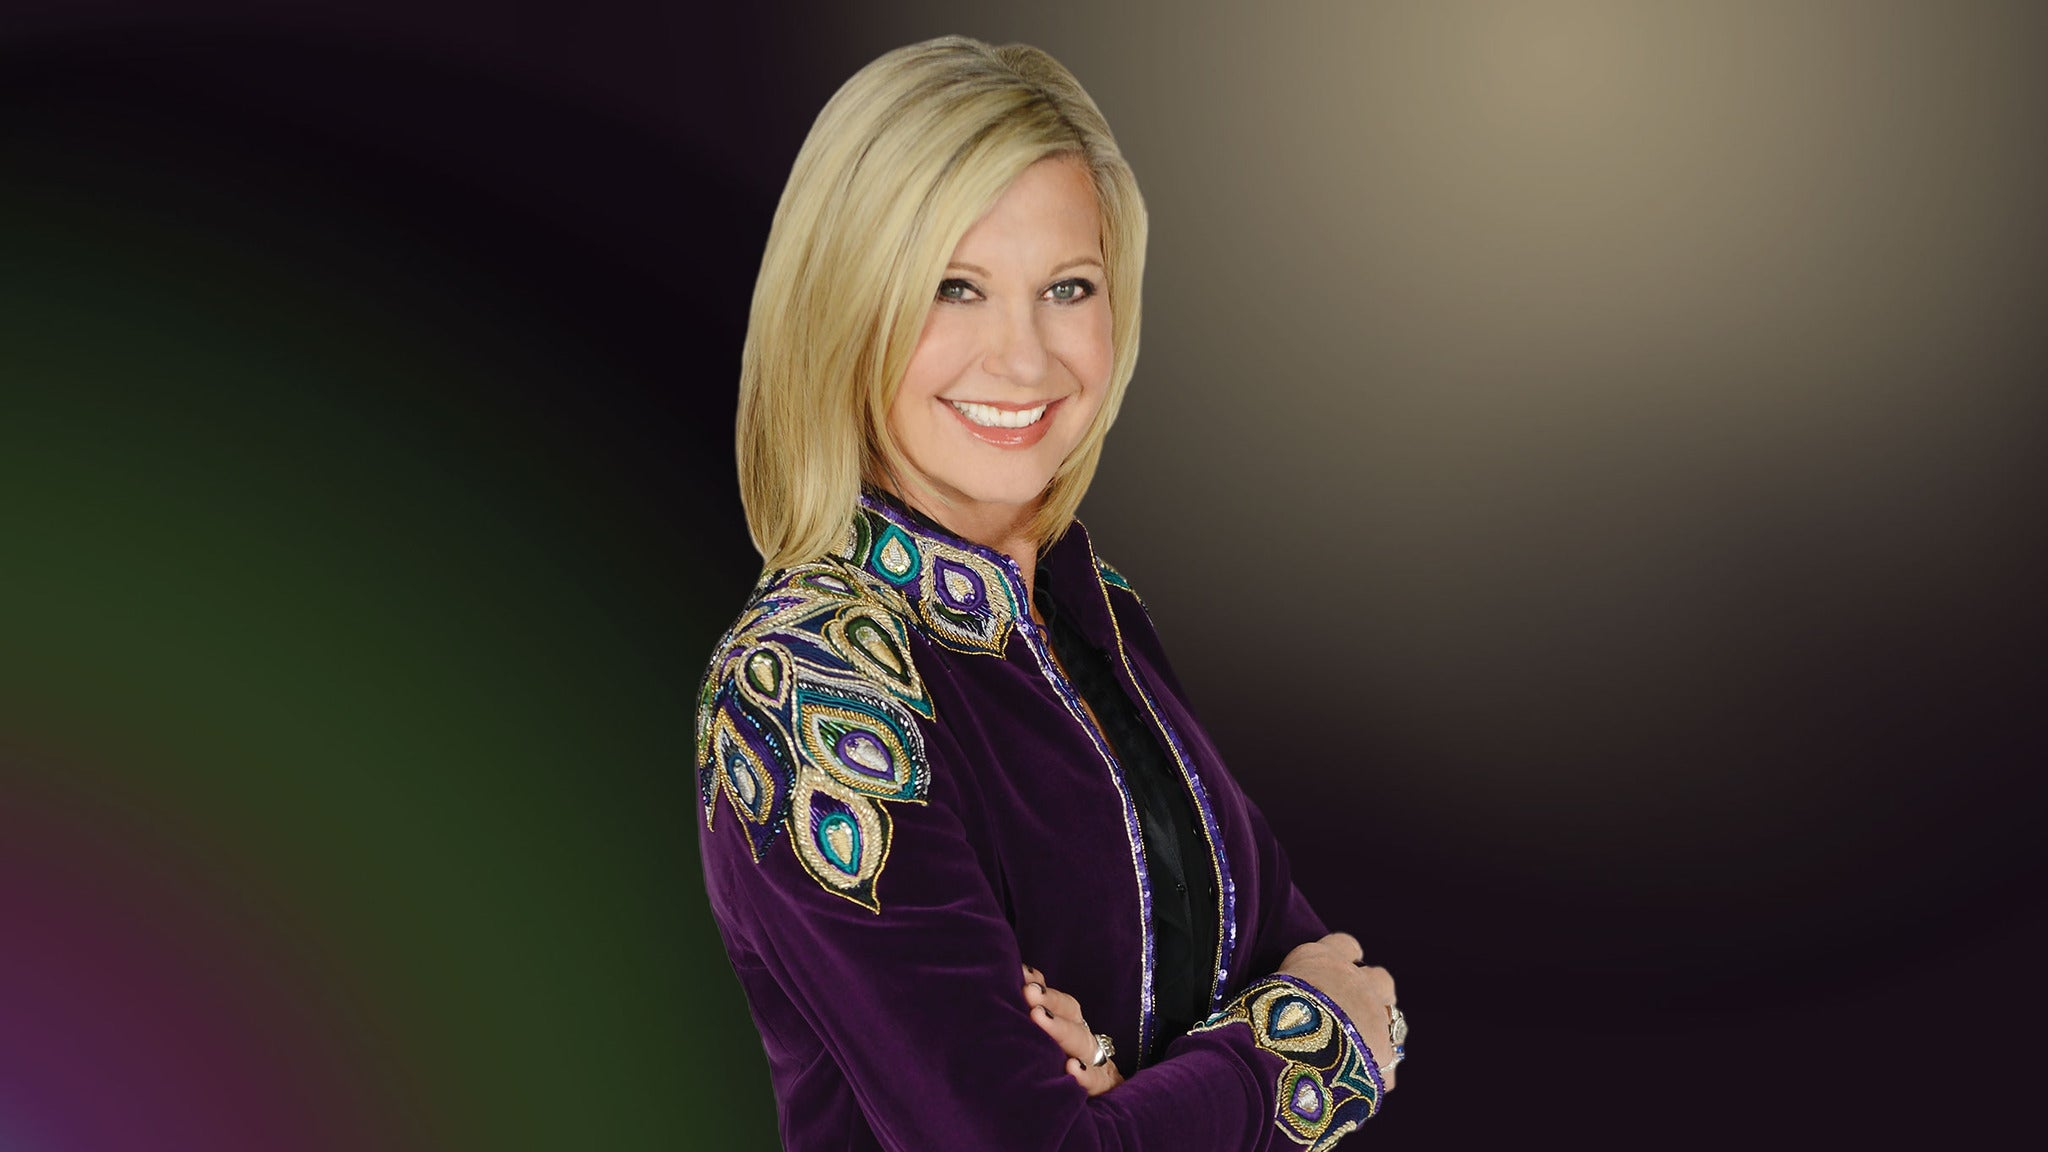 Olivia Newton-John at Genesee Theatre